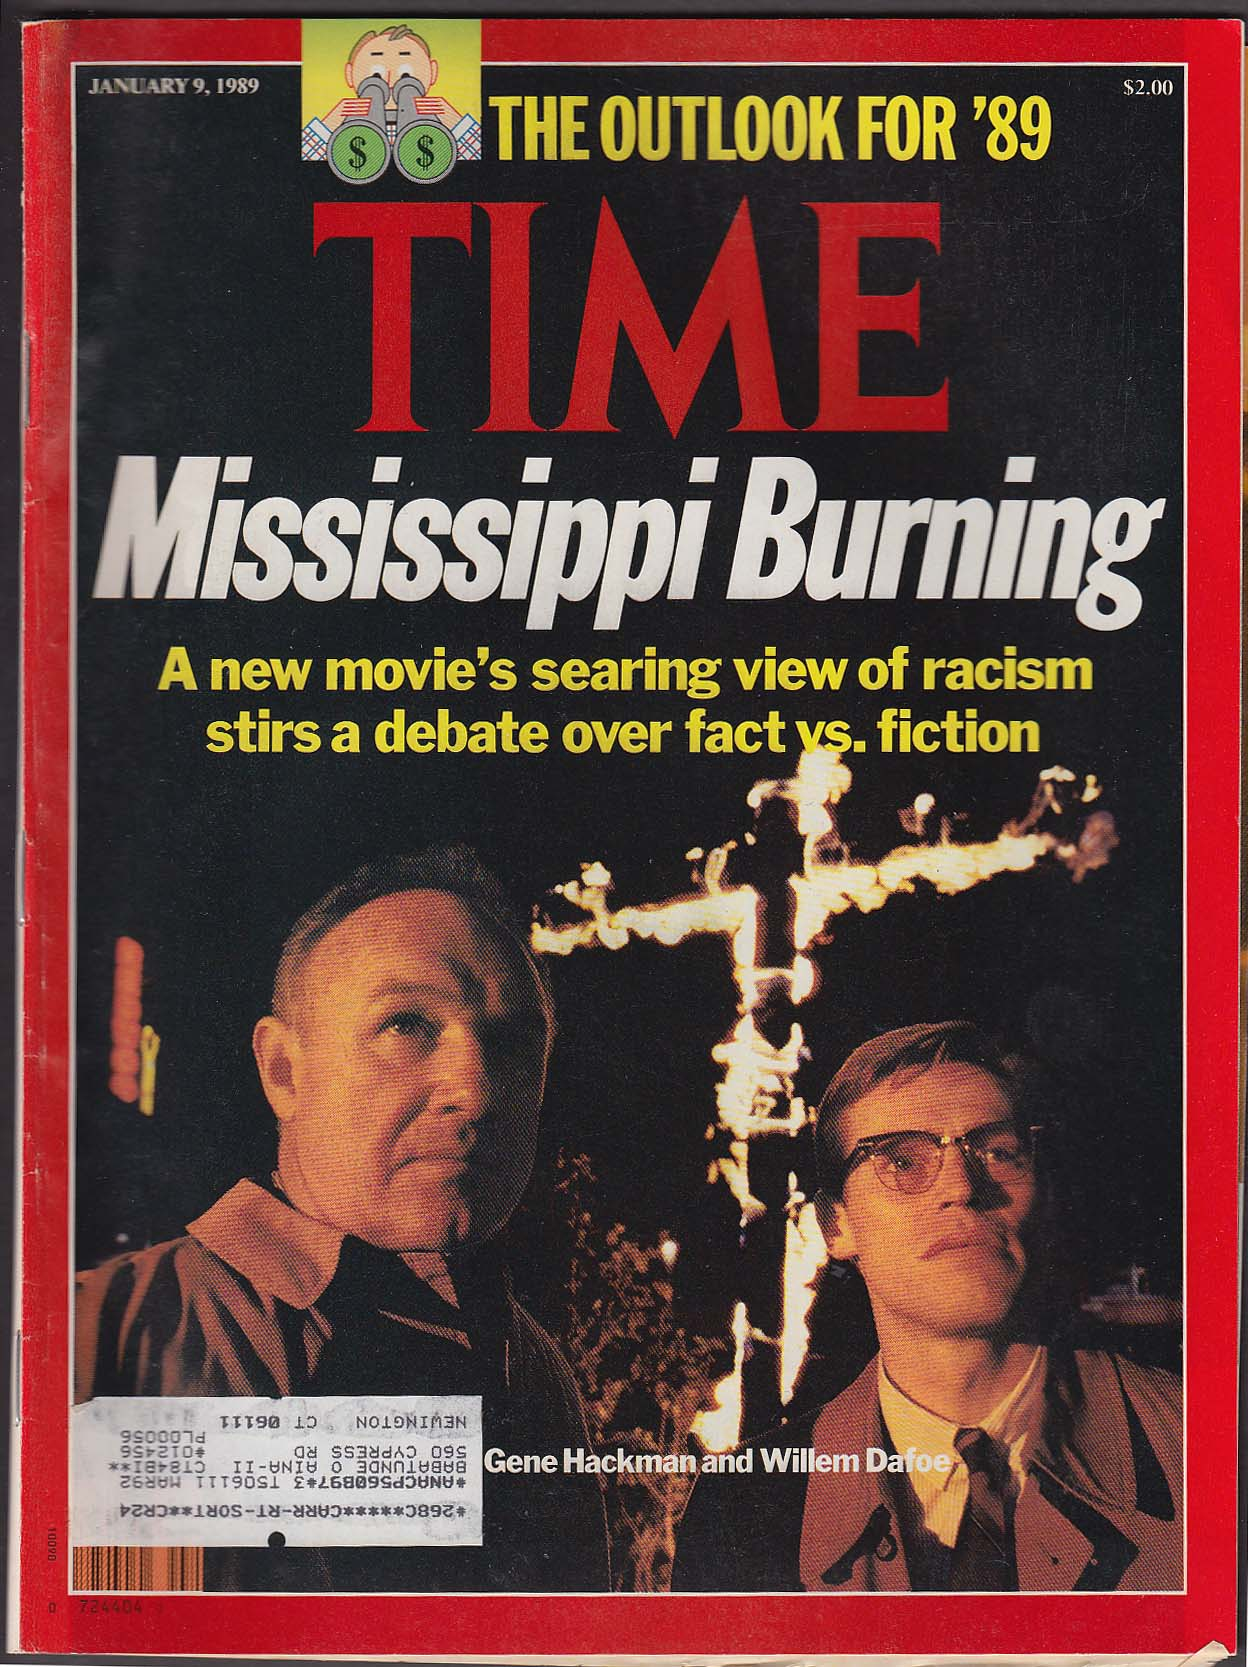 TIME Mississippi Burning Gene Hackman Willem Dafoe 1/9 1989